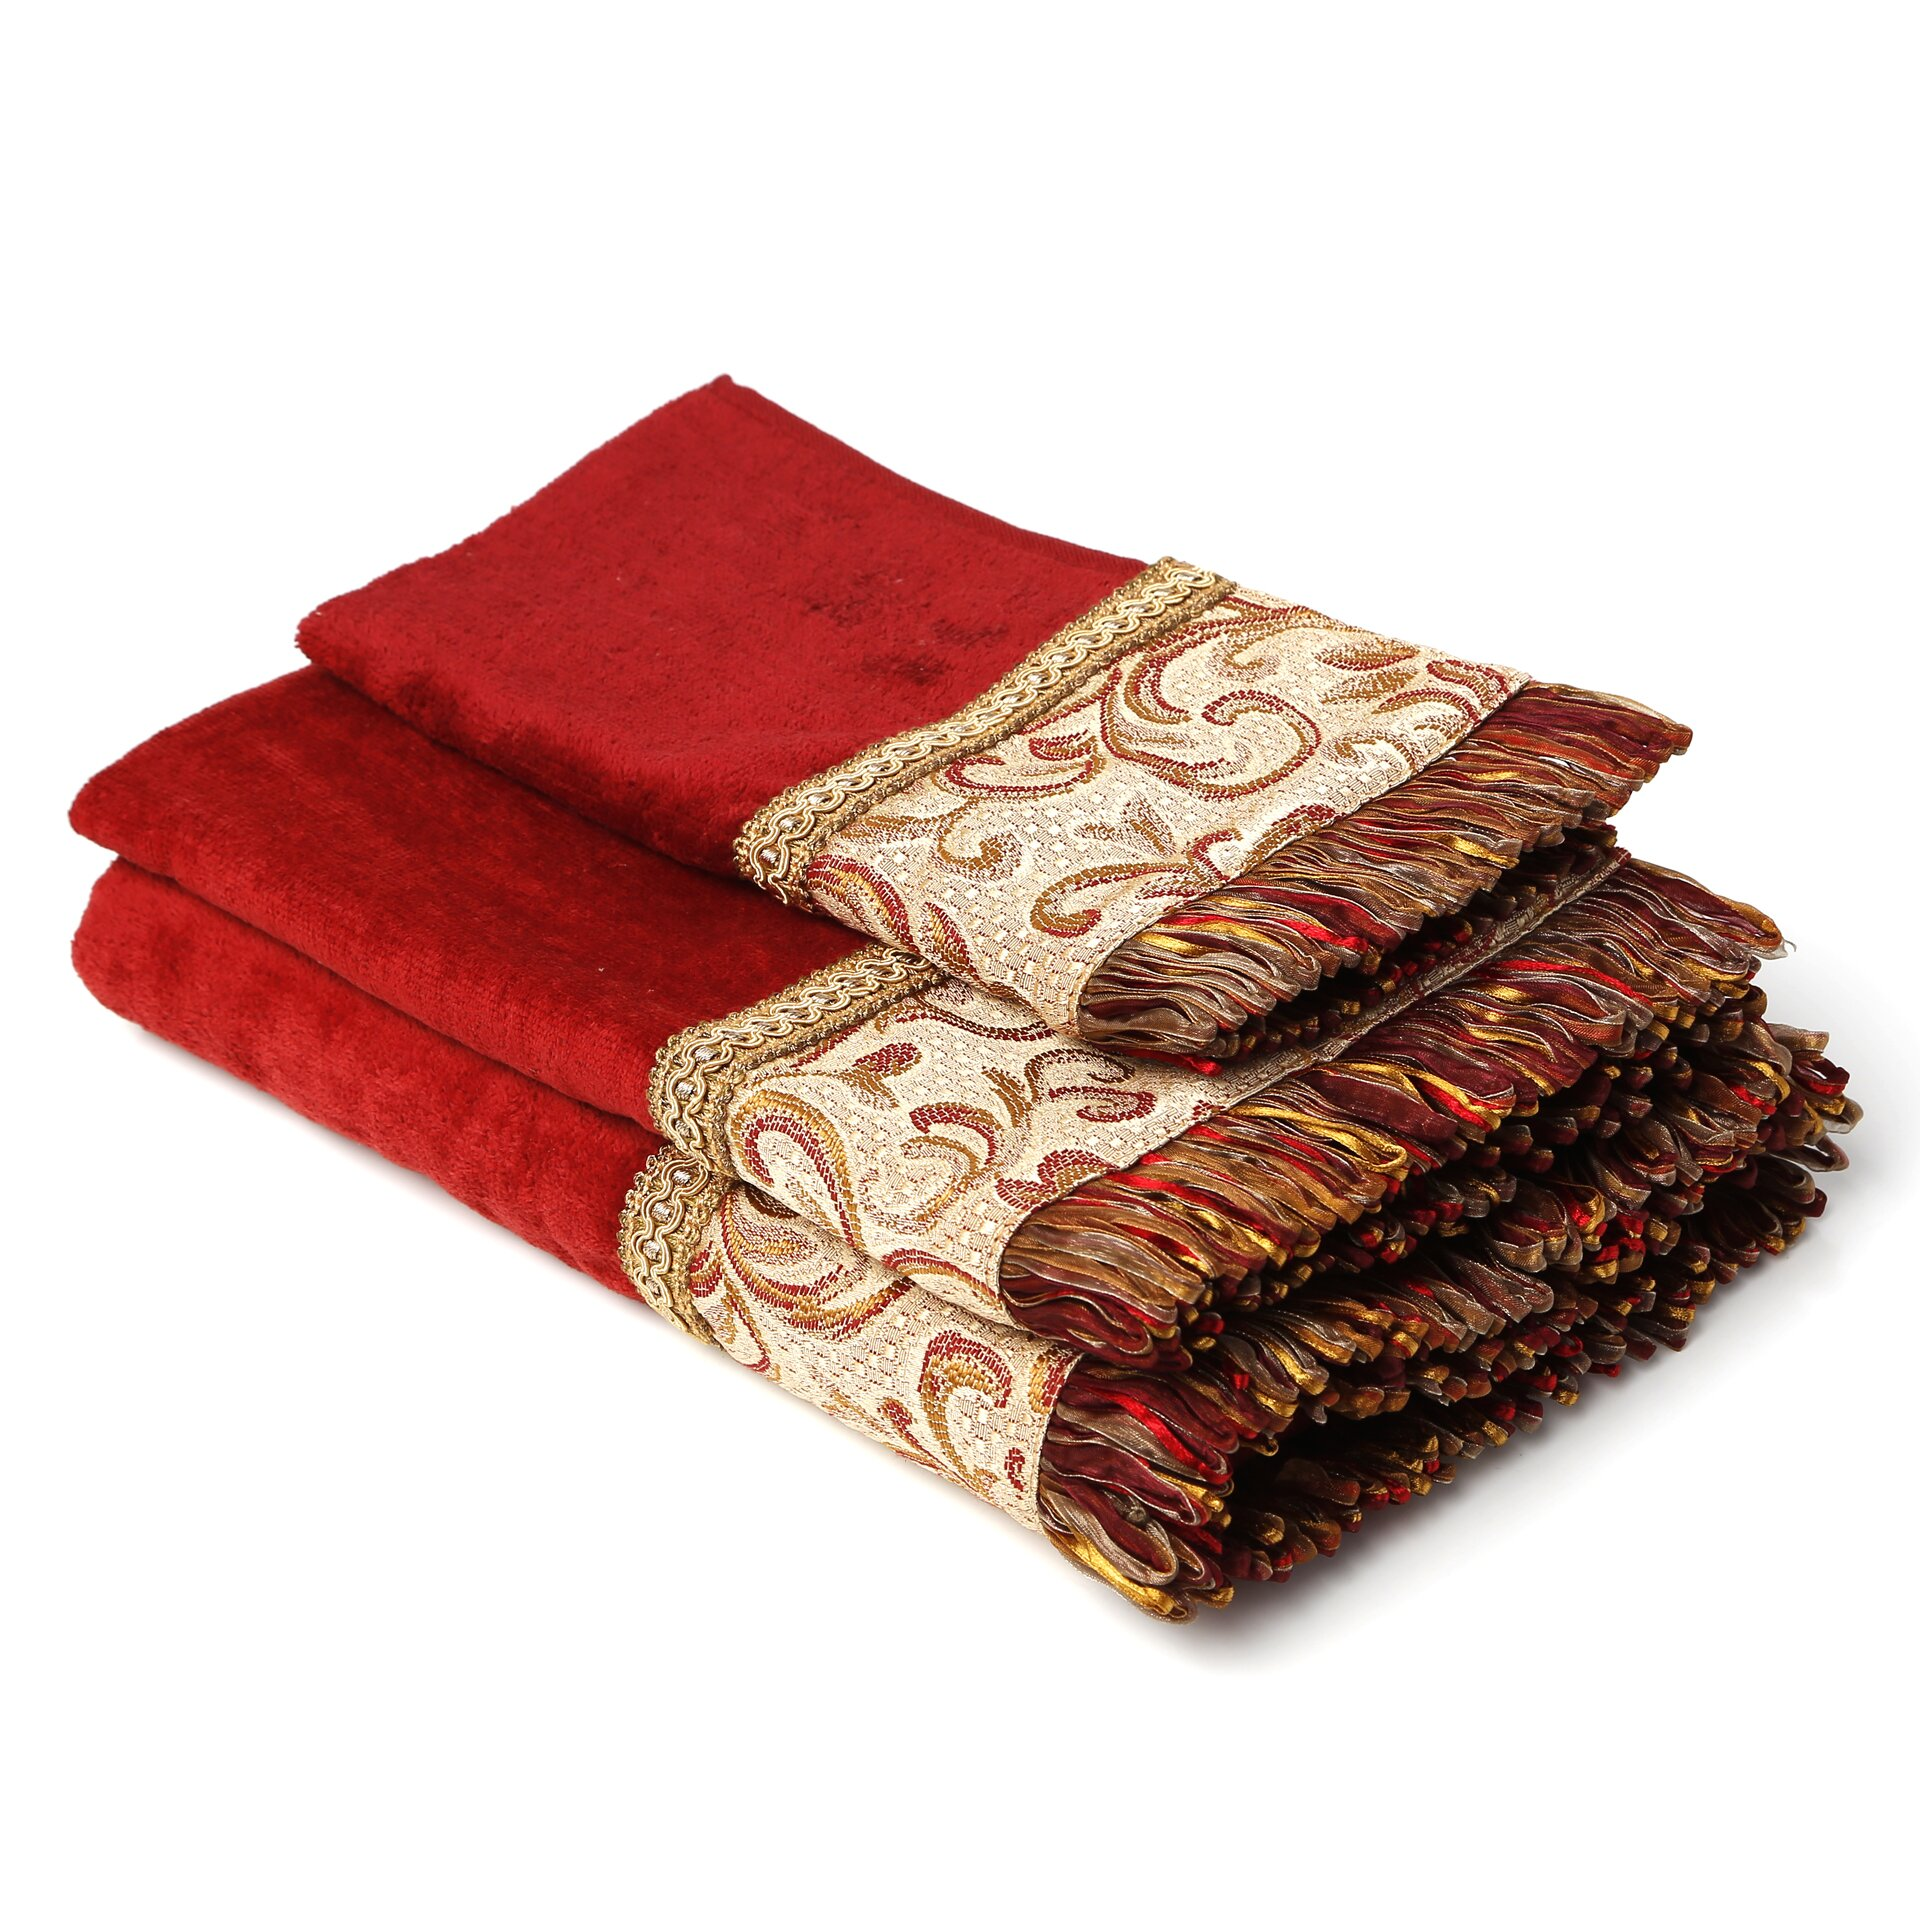 Sherry kline swirl paisley decorative 3 piece towel set for Decorative bath towels